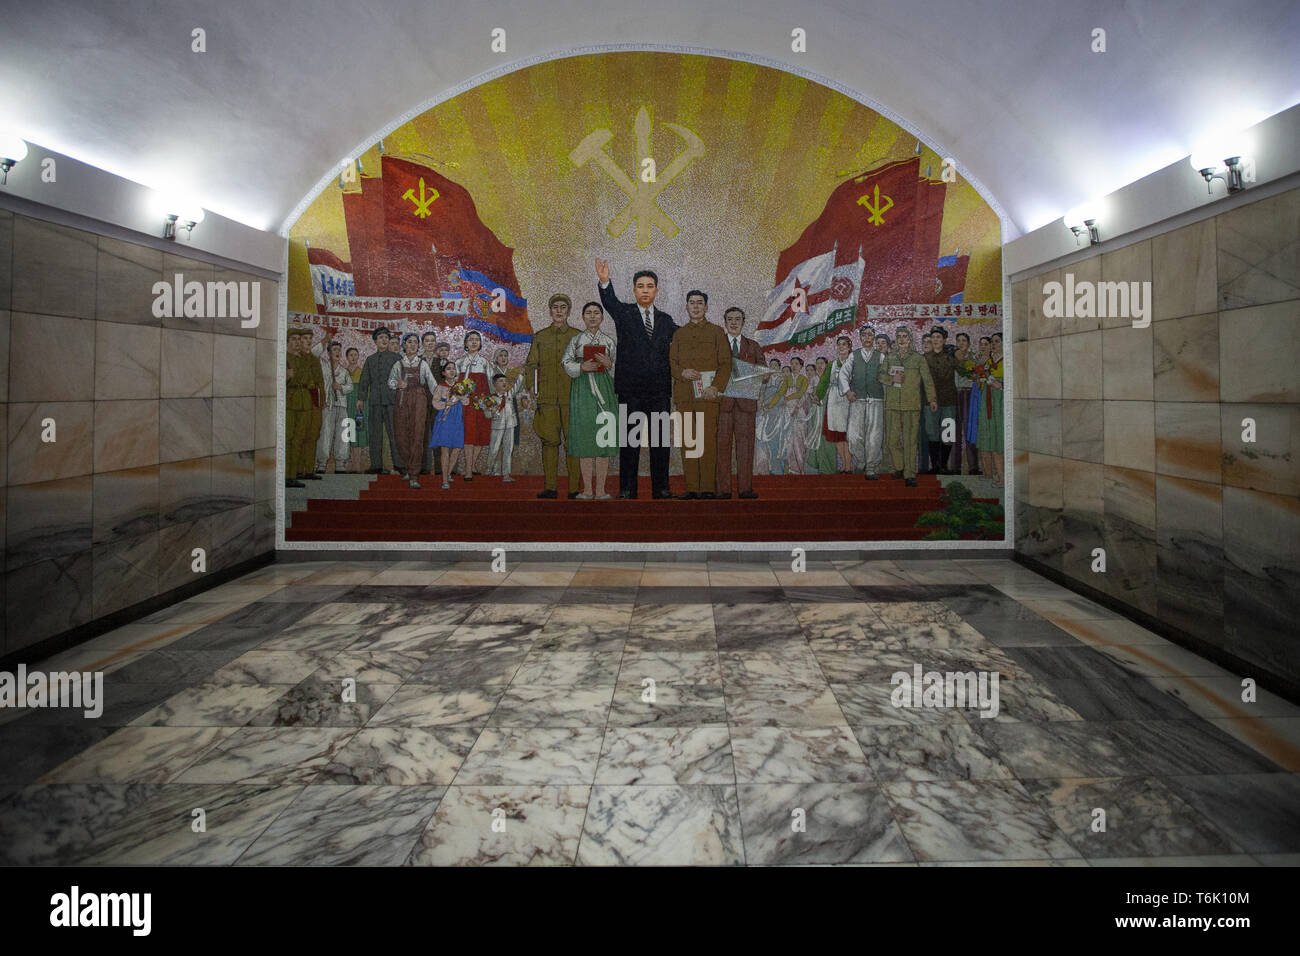 A large mosaic mural inside a Pyongyang metro station shows flags and workers and the symbol of the North Korean Communist Party. - Stock Image